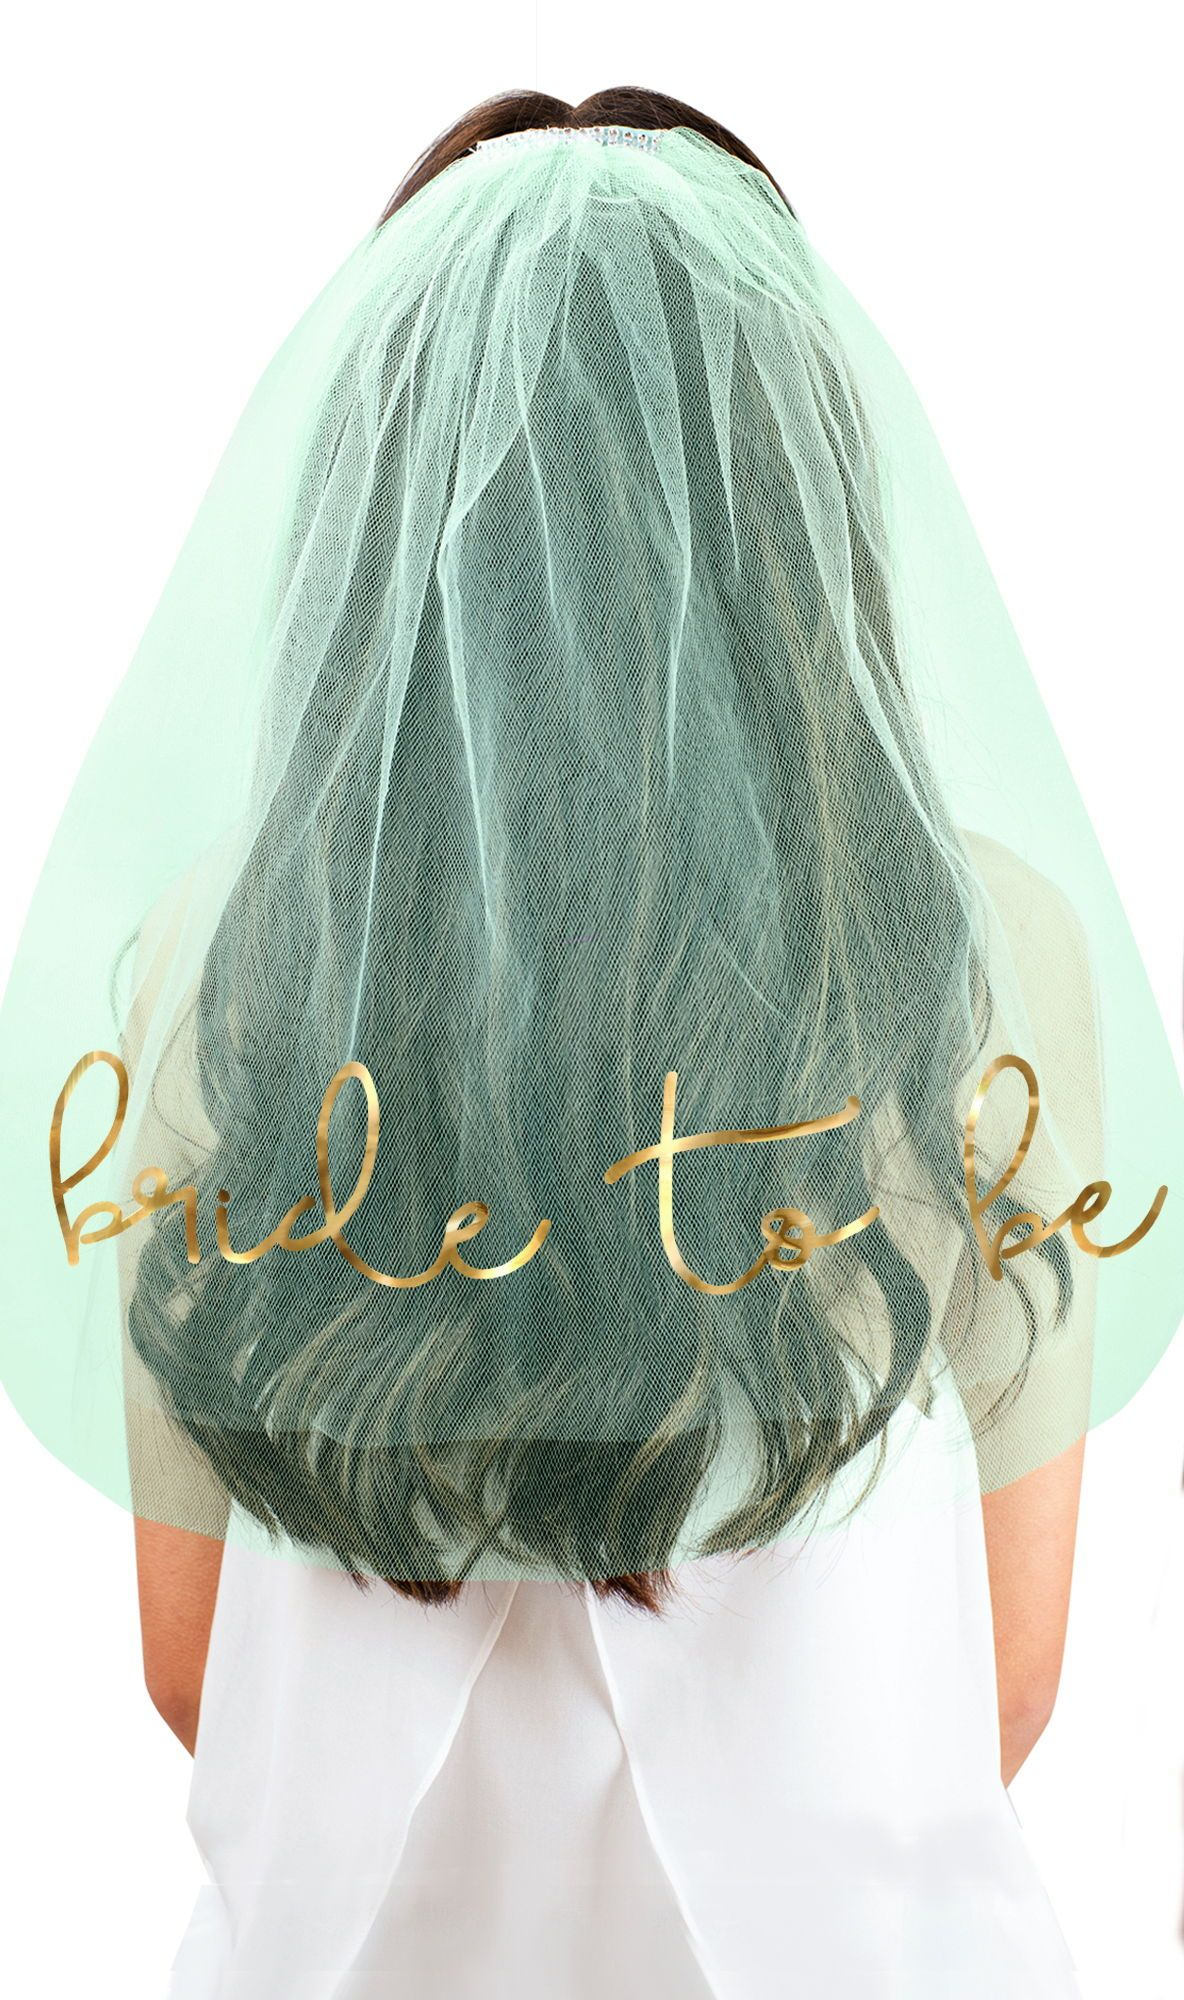 Bachelorette Party Veil for Bride to Be Bridal Shower Veil for Fun Wedding Accessory Gold Foil